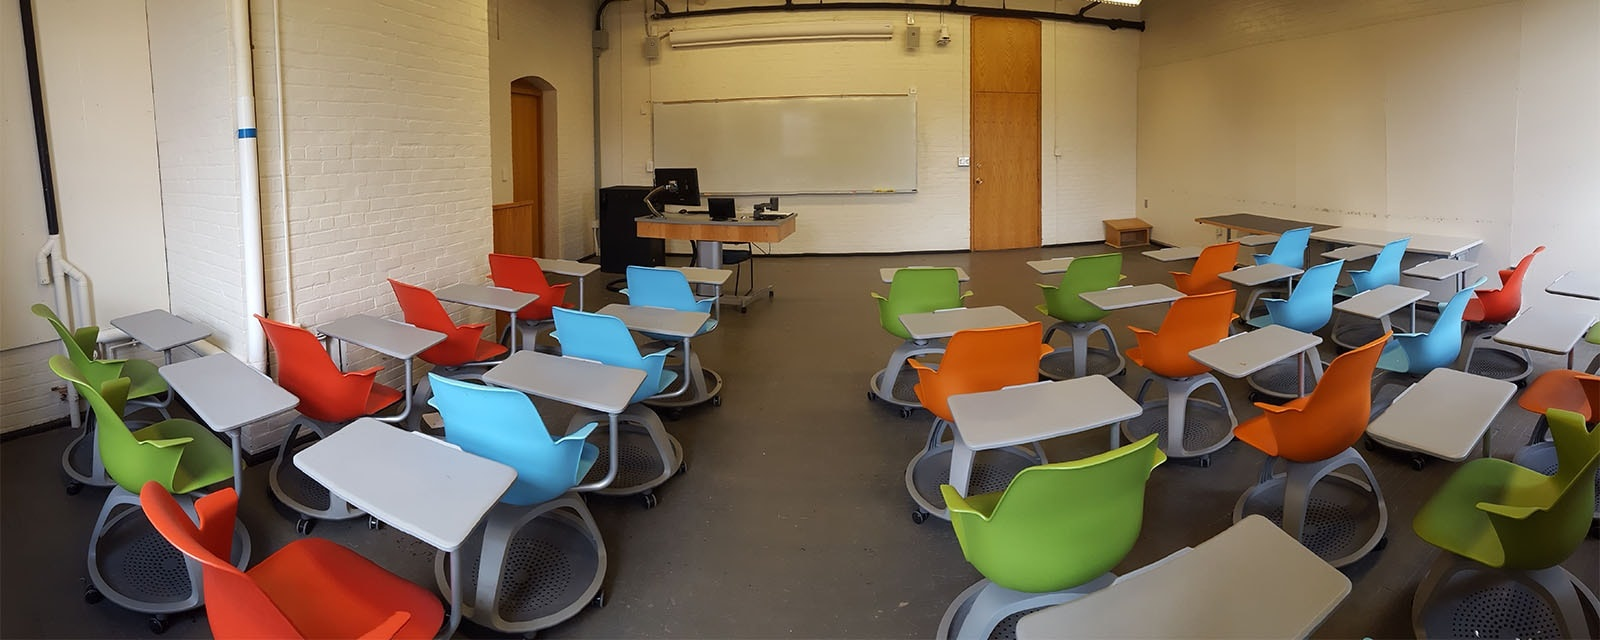 Panorama of Smith 337 Rear, movable chairs, teaching station front right